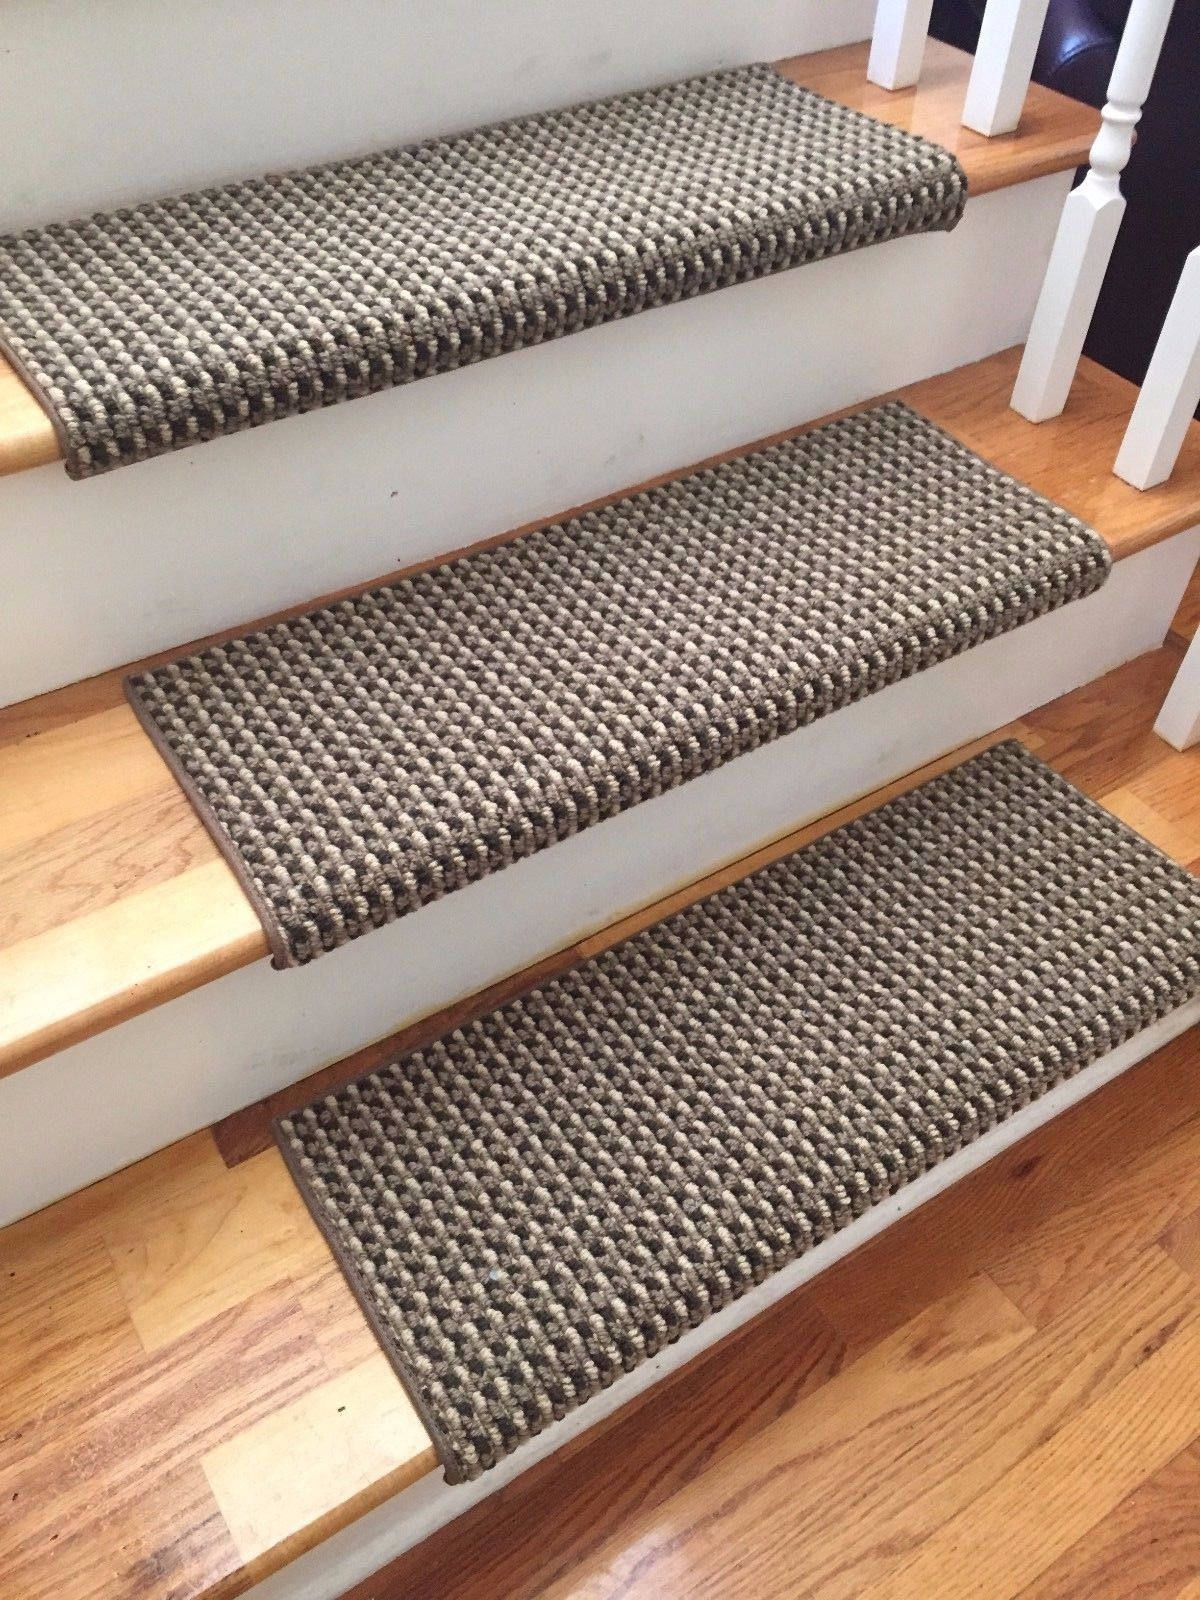 San Marco Cathedral Shadow New Zealand Wool True Bullnose Padded Carpet Stair Tread Runner Replacement Style Comfort Safety Sold Each Carpet Stairs Carpet Stair Treads Stair Treads